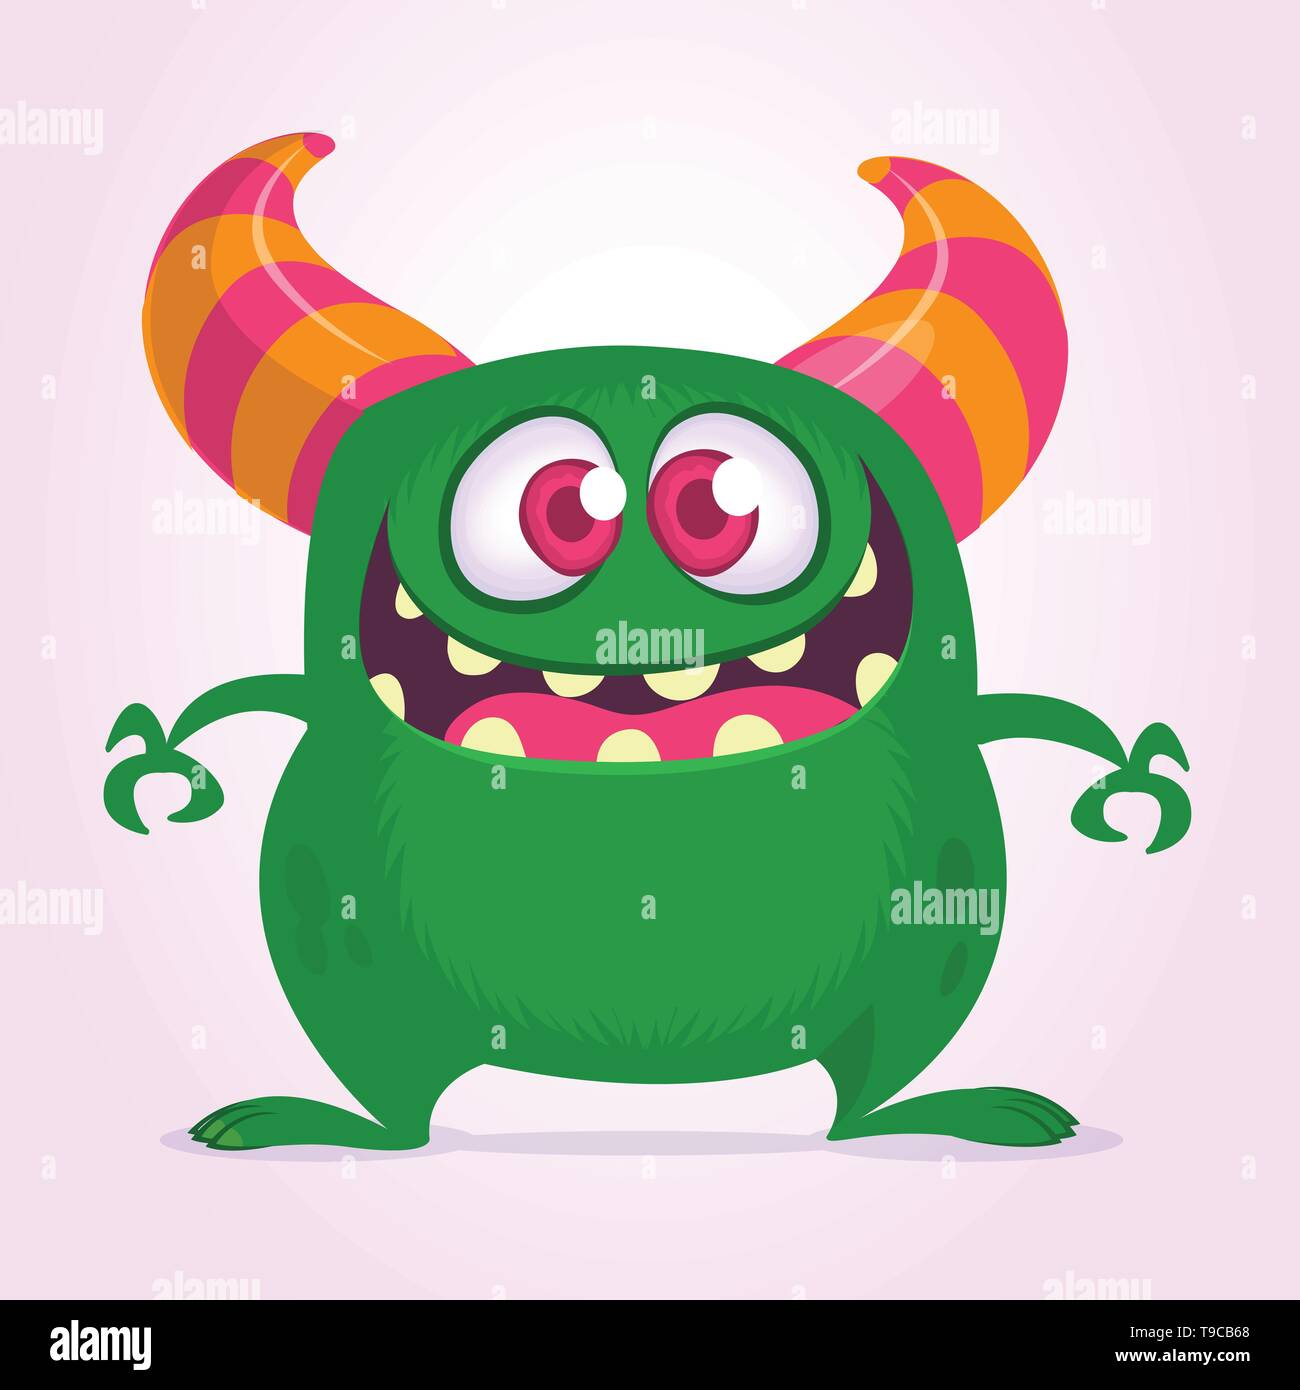 Happy cartoon monster with big mouth full of teeth. Vector green monster illustration. Halloween design - Stock Image